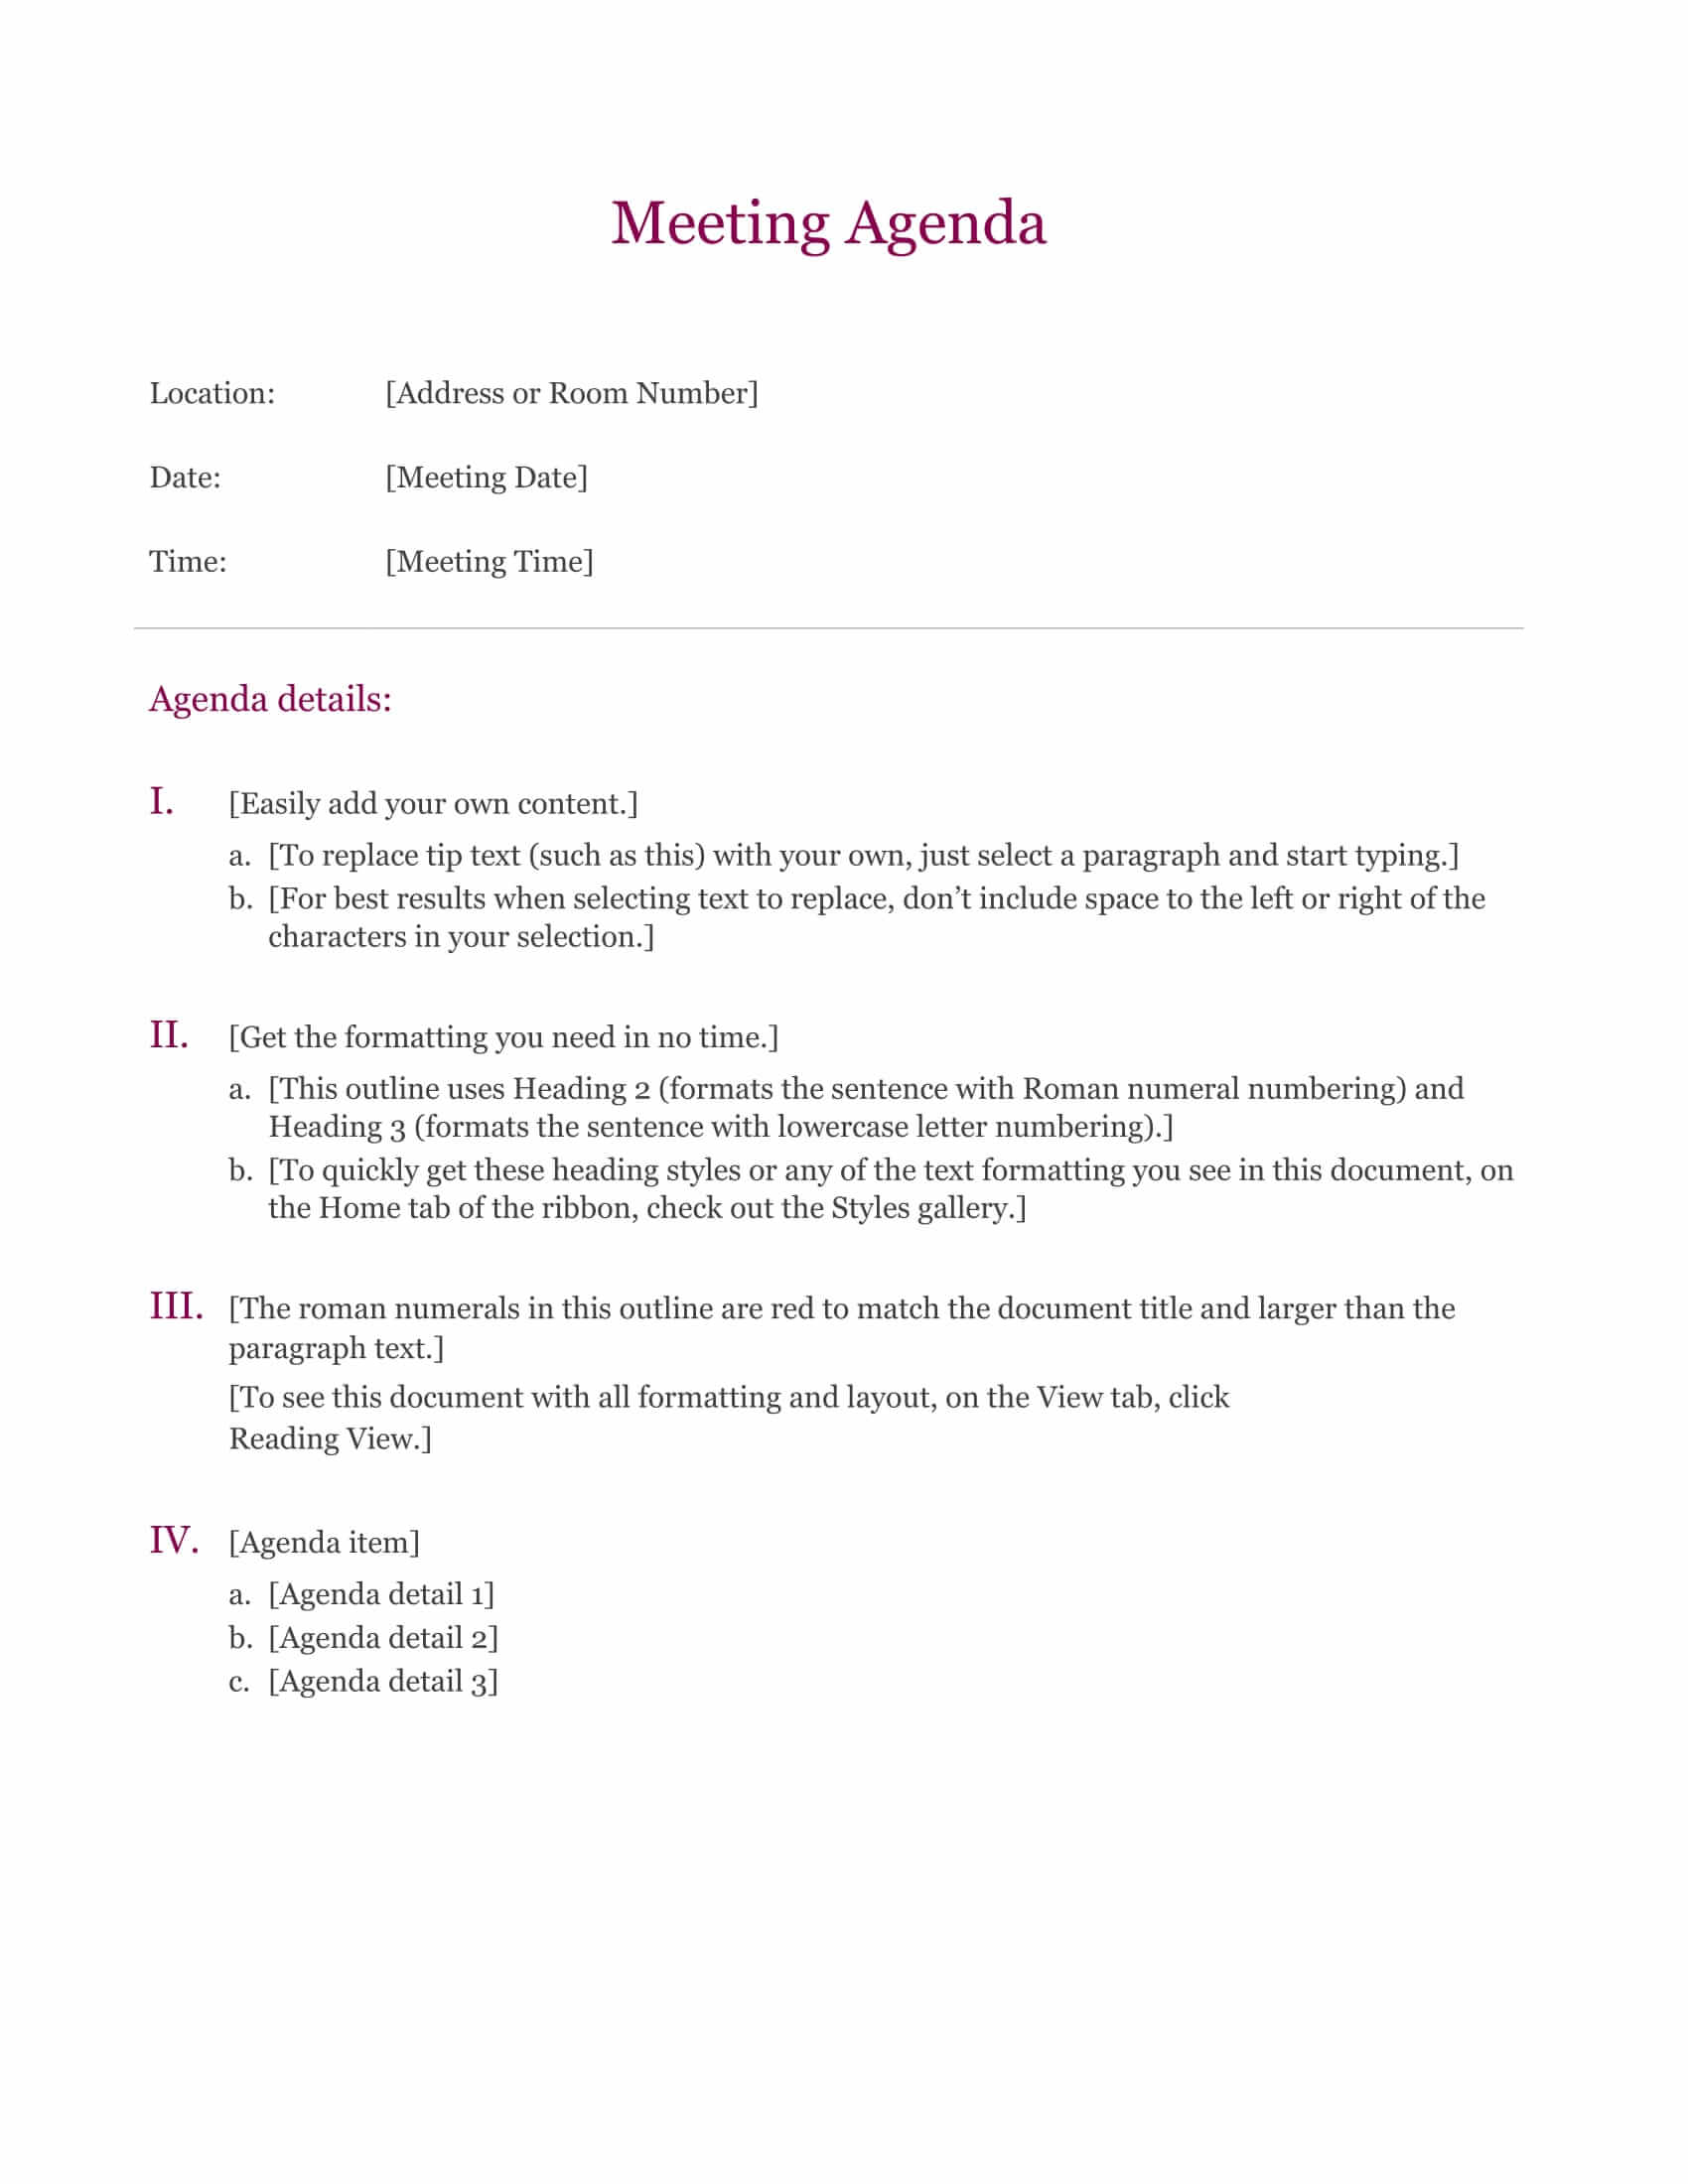 Download A Meeting Agenda Template FormFactory